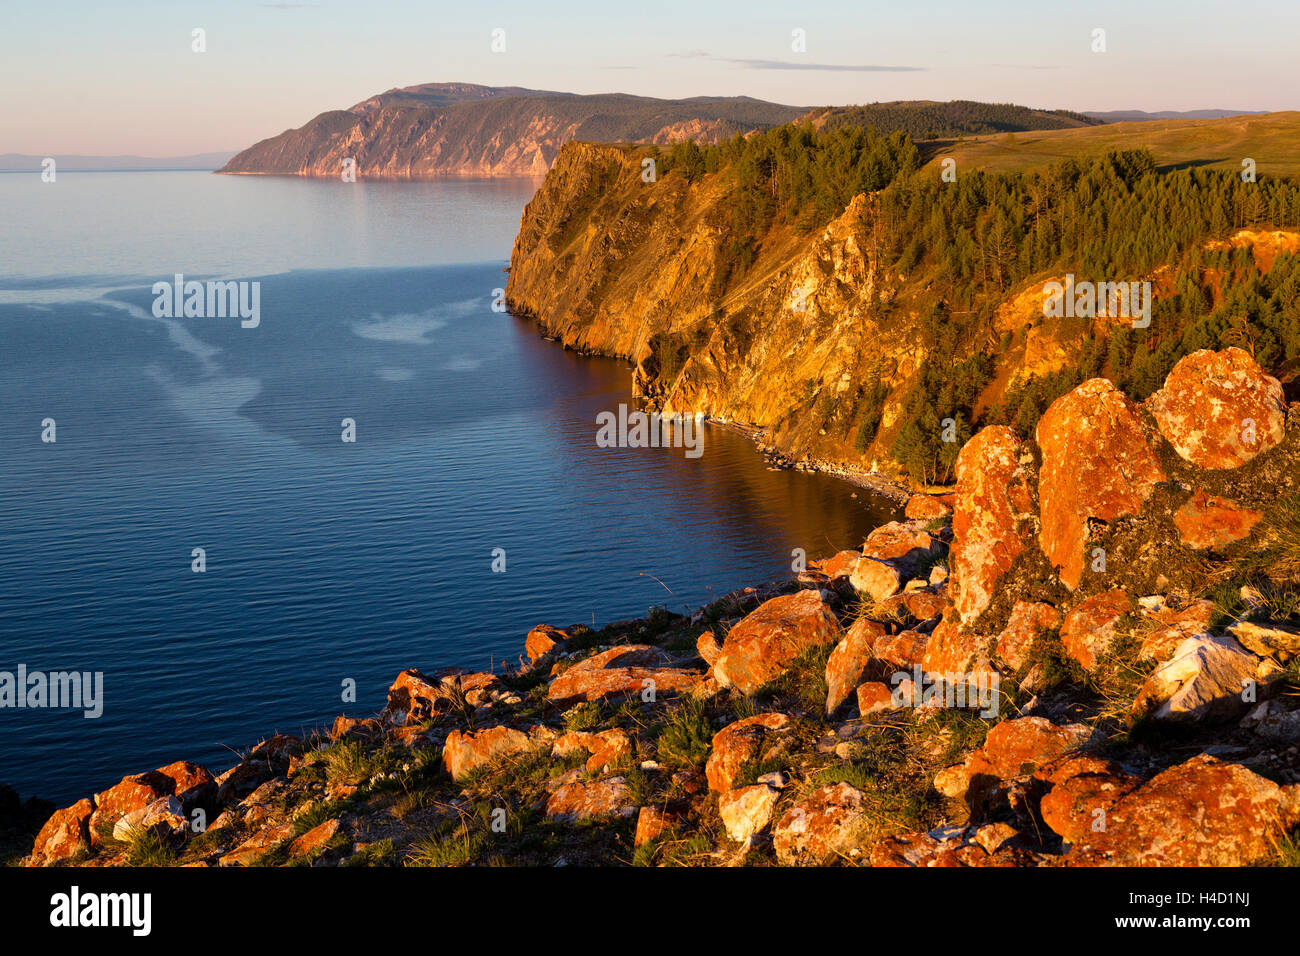 Sunset view of coastline and cape 'Three brothers' of Olkhon island on Baikal lake, Russia - Stock Image